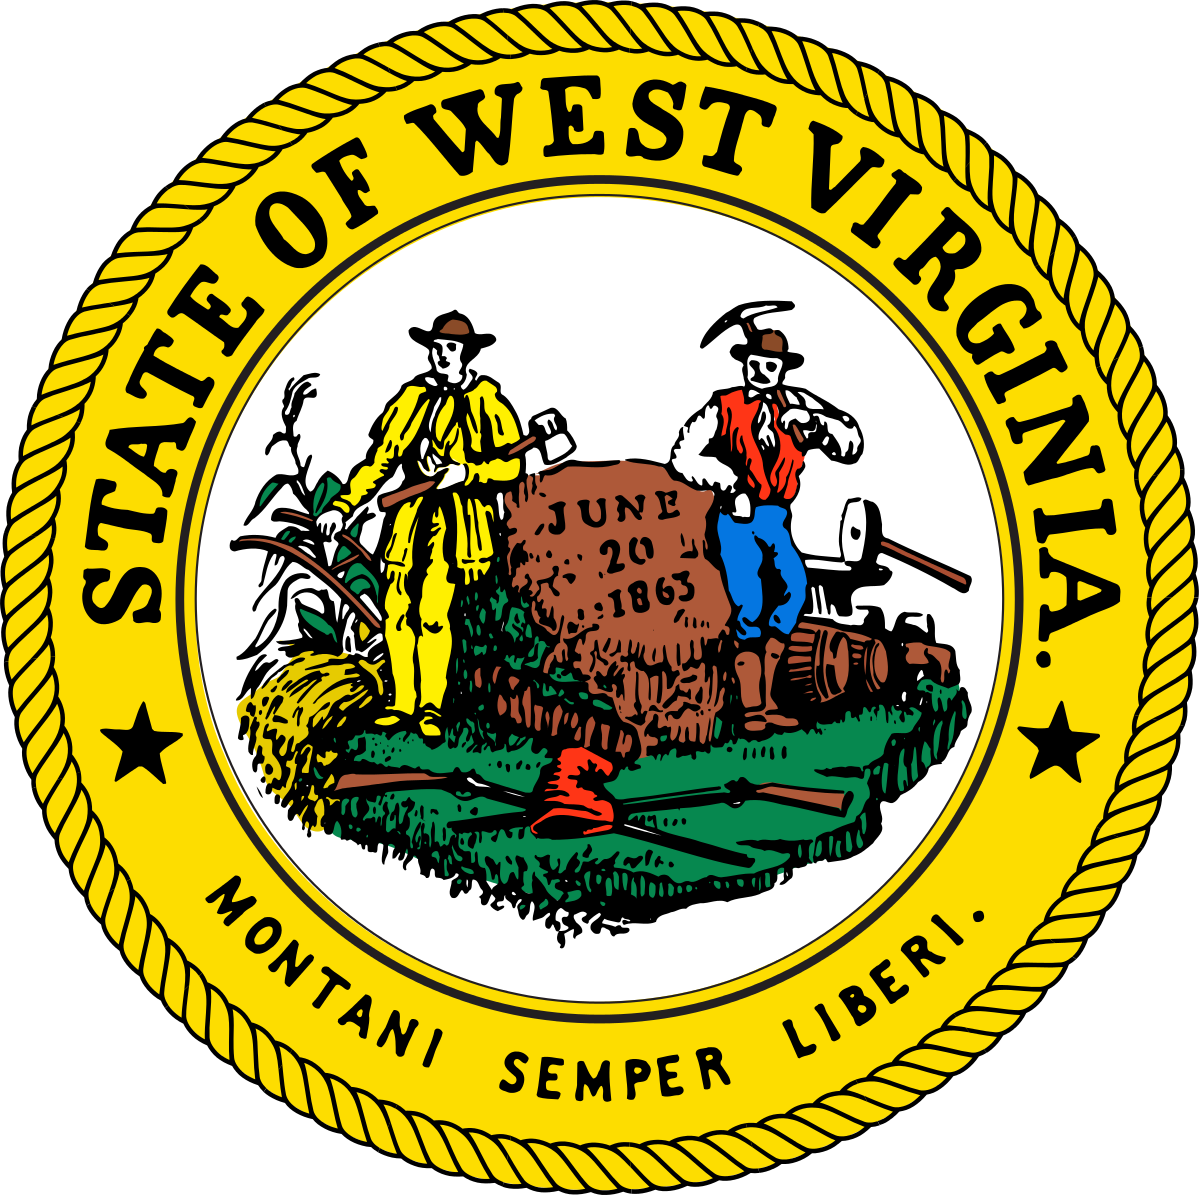 List of Attorneys General of West Virginia.